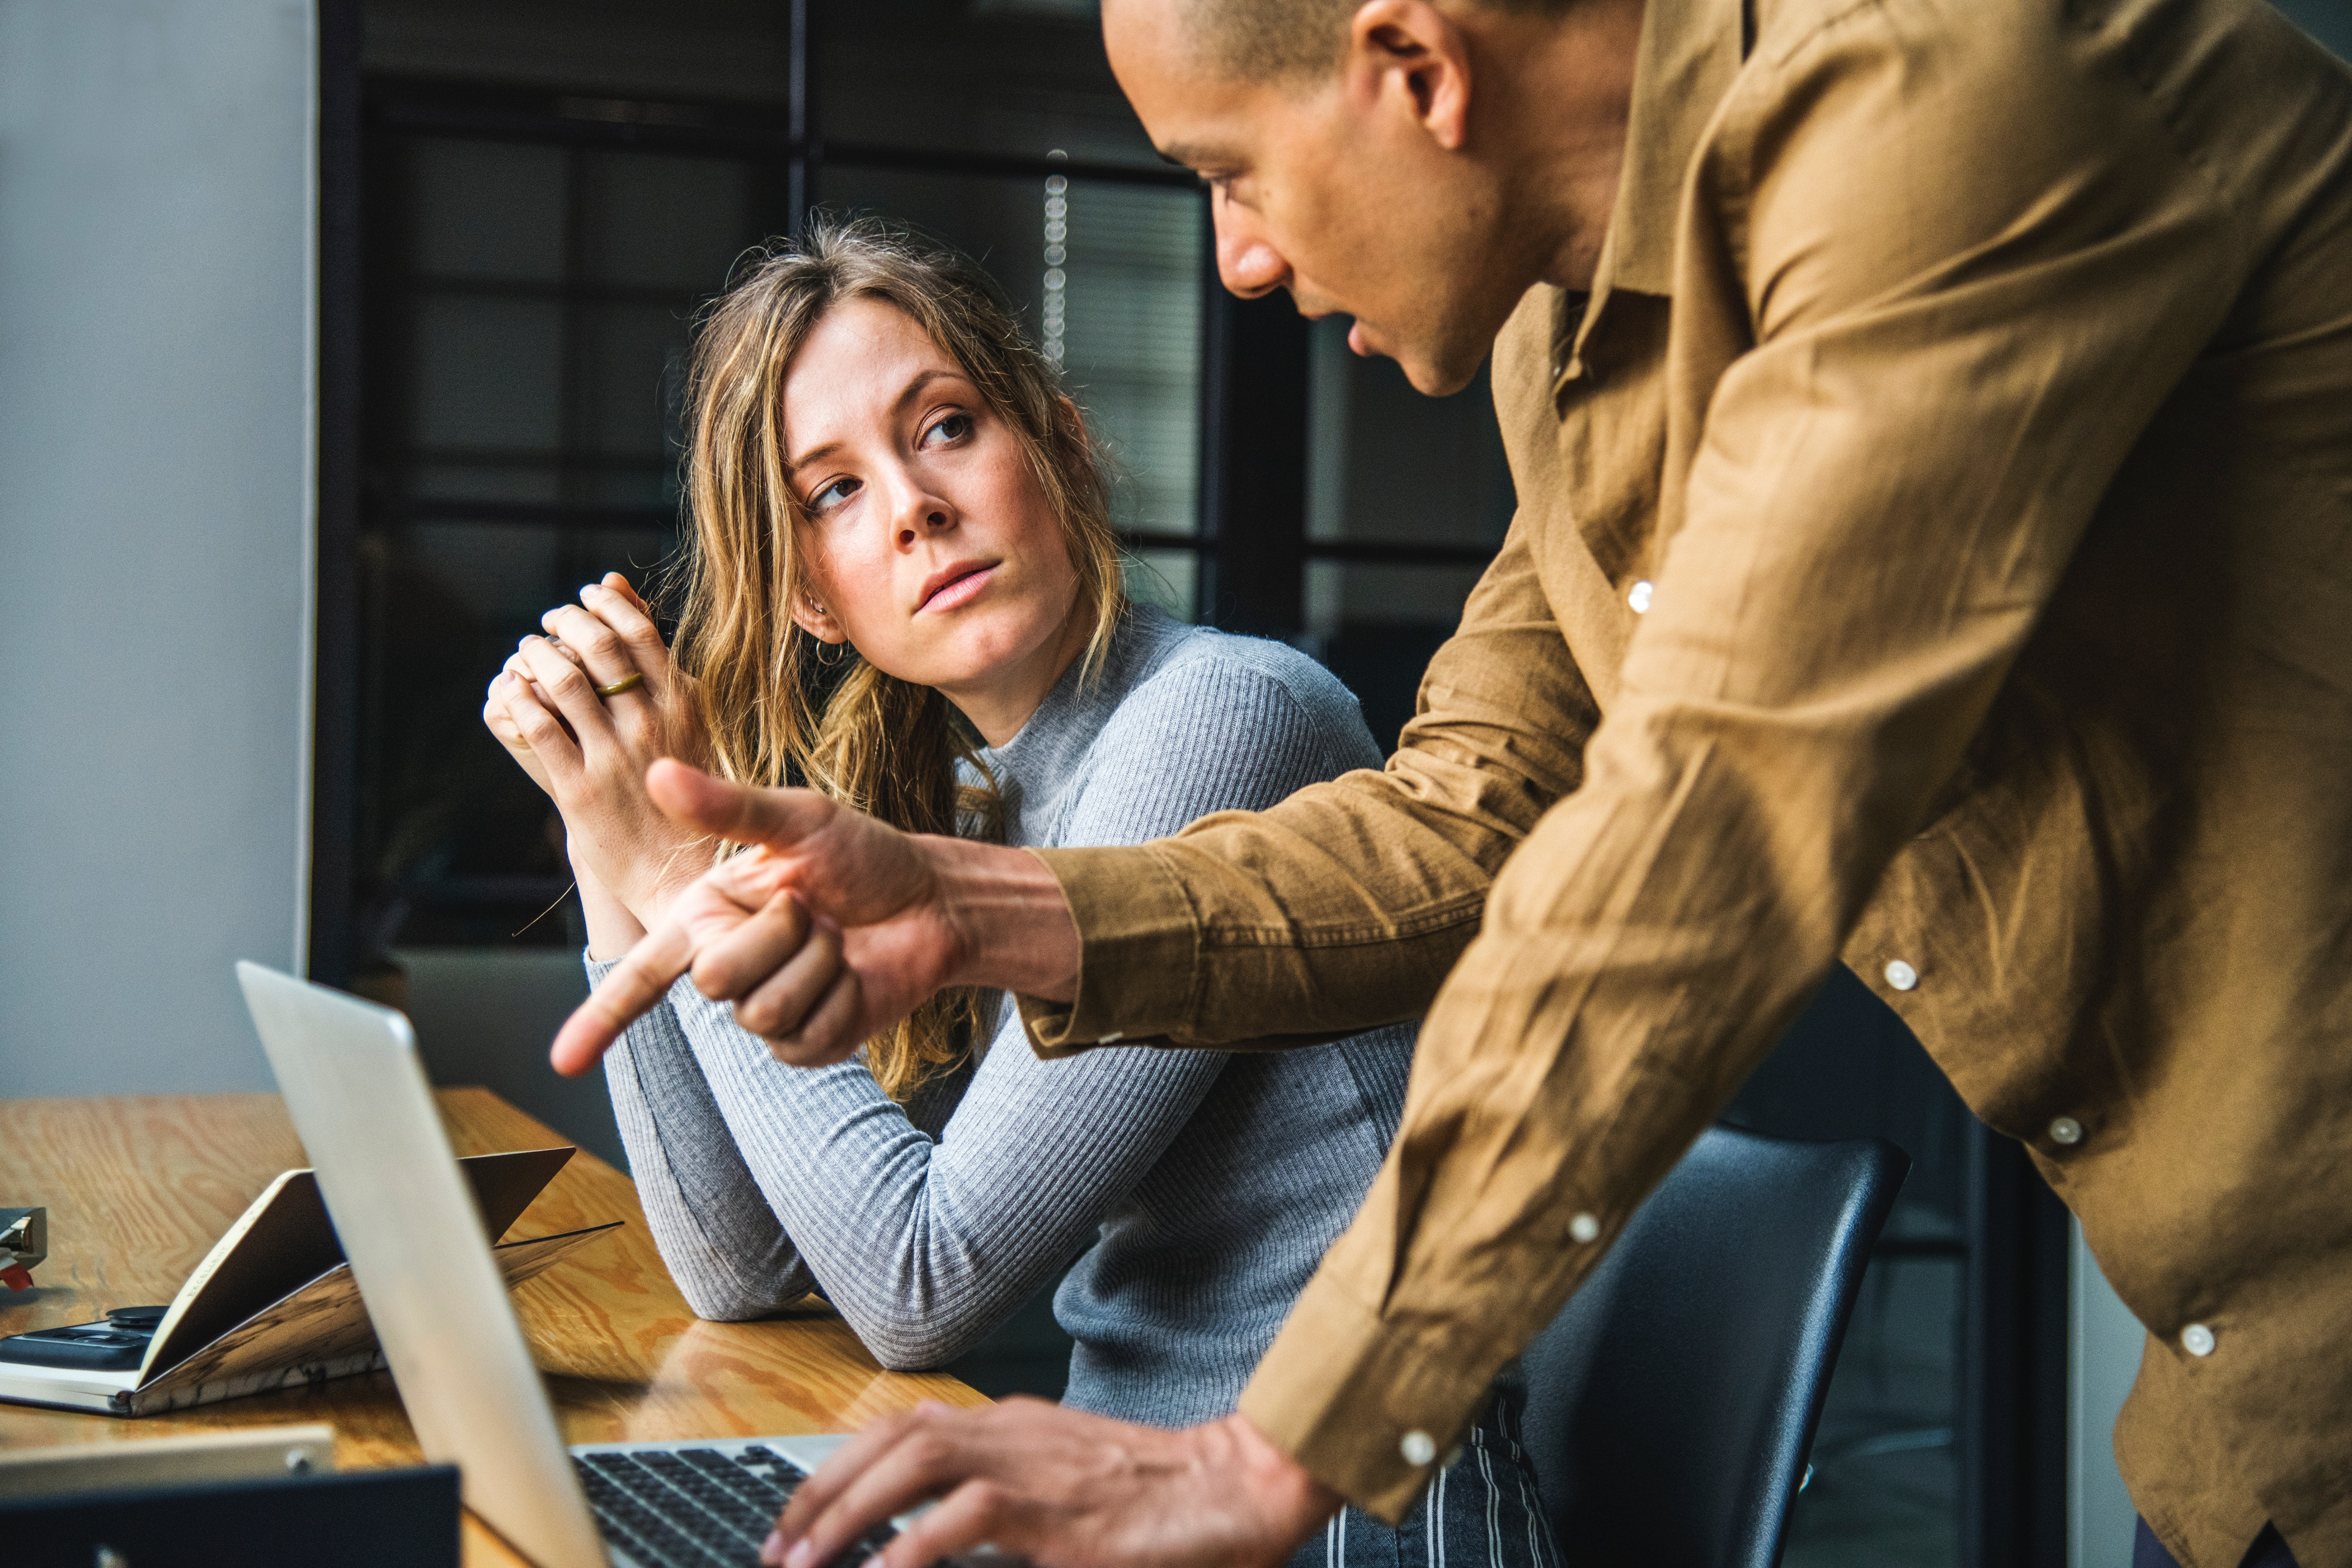 man showing woman how to do something at the laptop